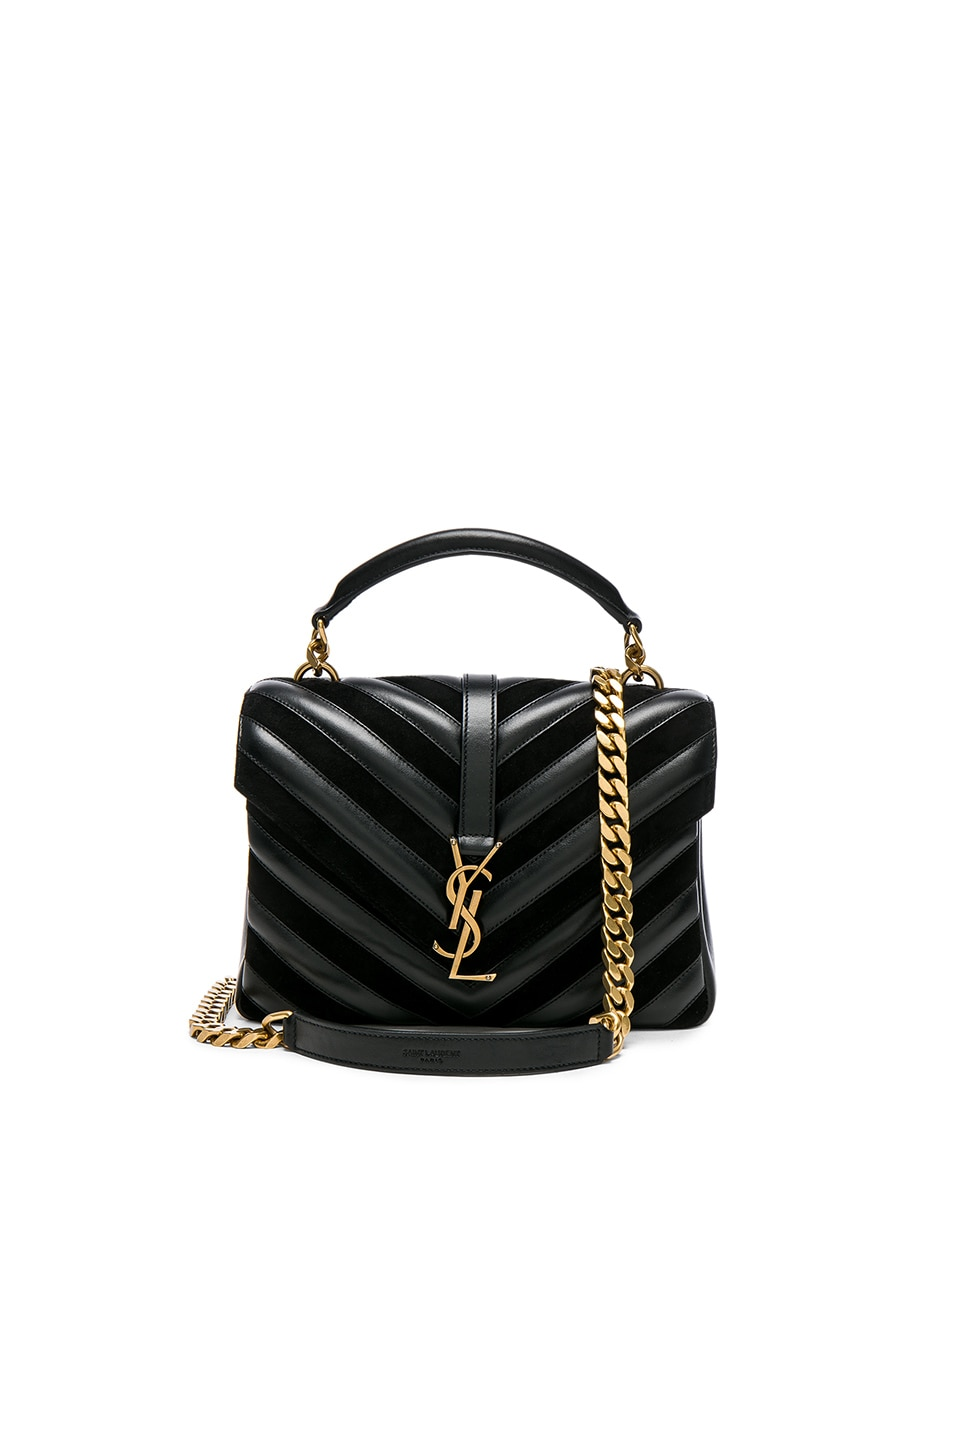 Image 1 of Saint Laurent Medium Leather & Suede Patchwork Monogramme College Bag in Black